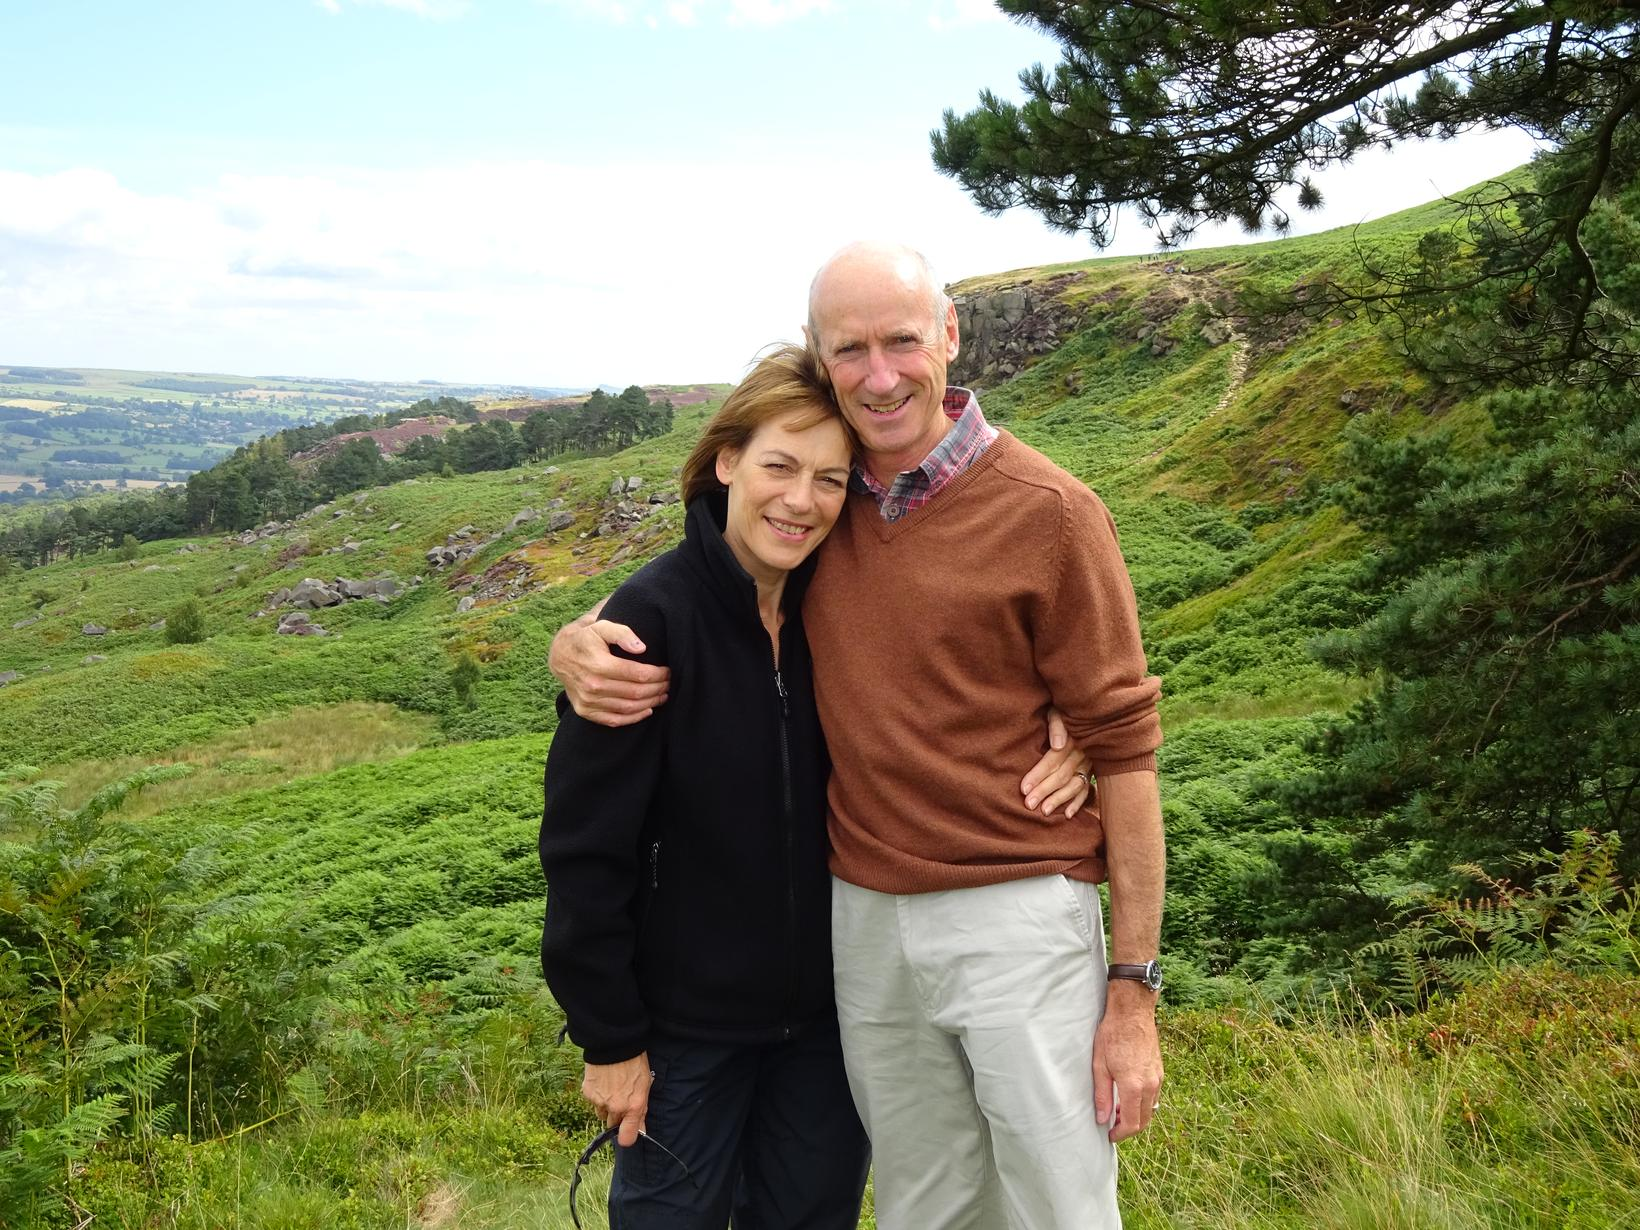 Barry & Sue from Bristol, United Kingdom